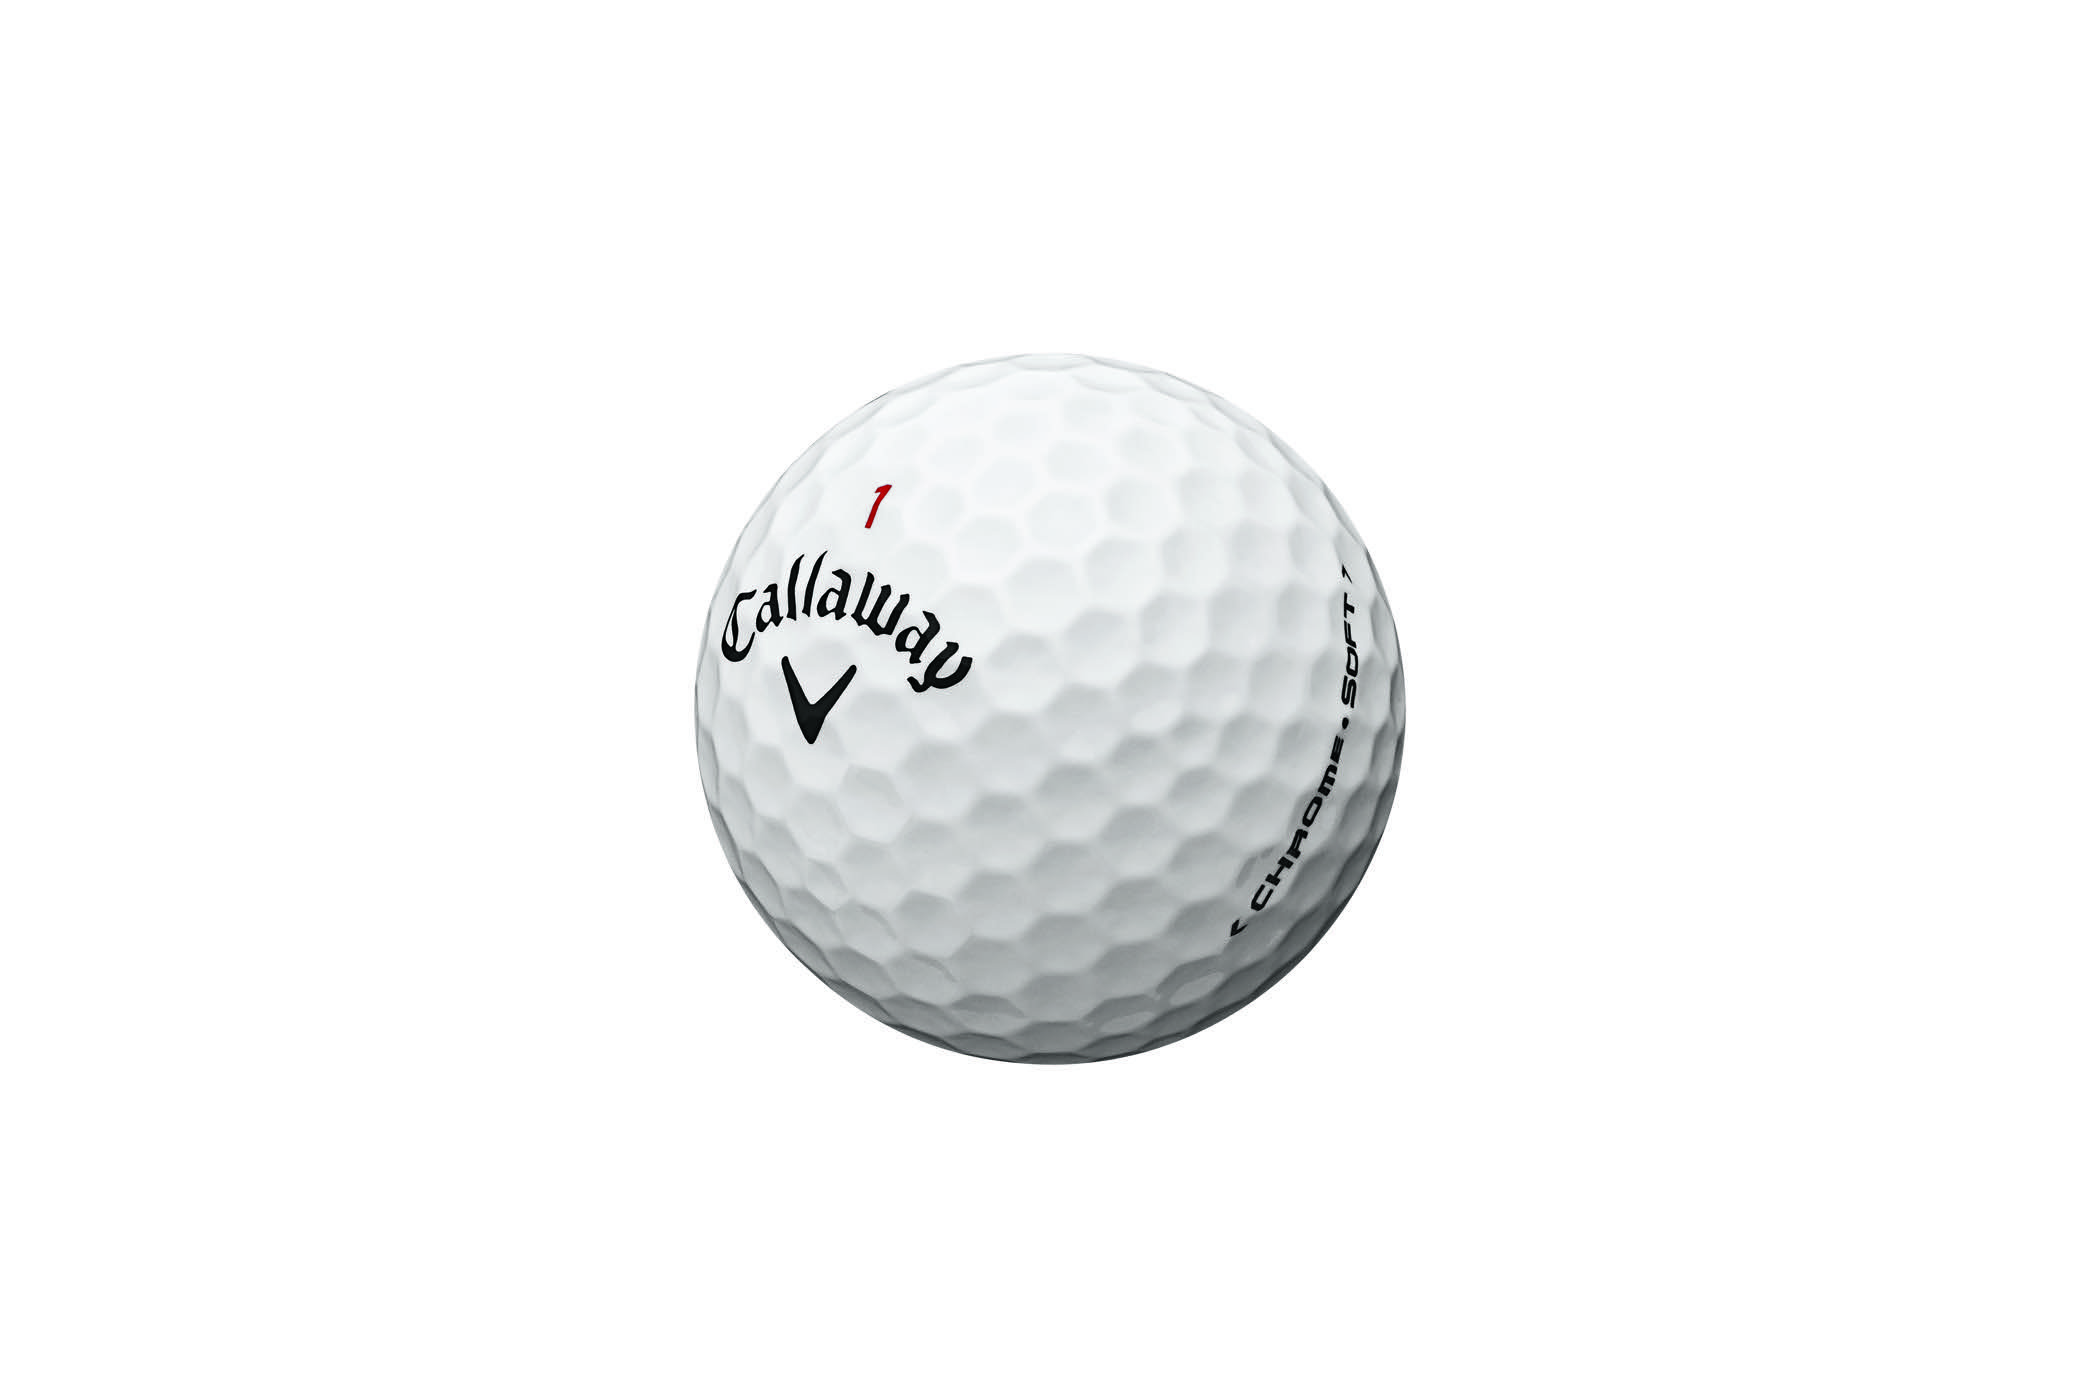 Chrome Soft golf ball